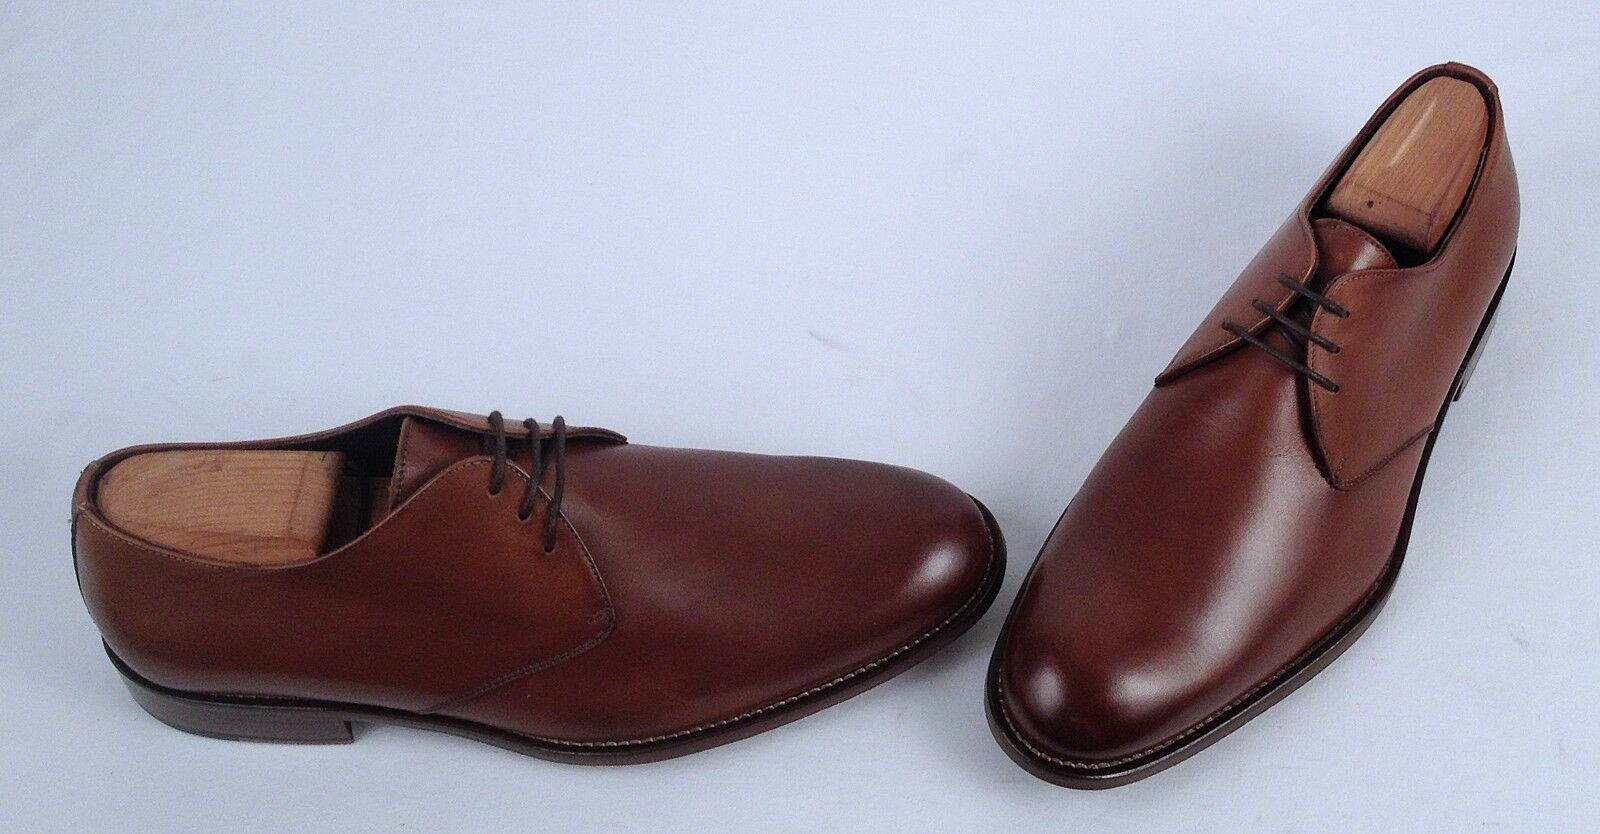 NEW   To Boot New York 'Winston' Oxford- Berry Tan- Size 8 M  395  (H5)